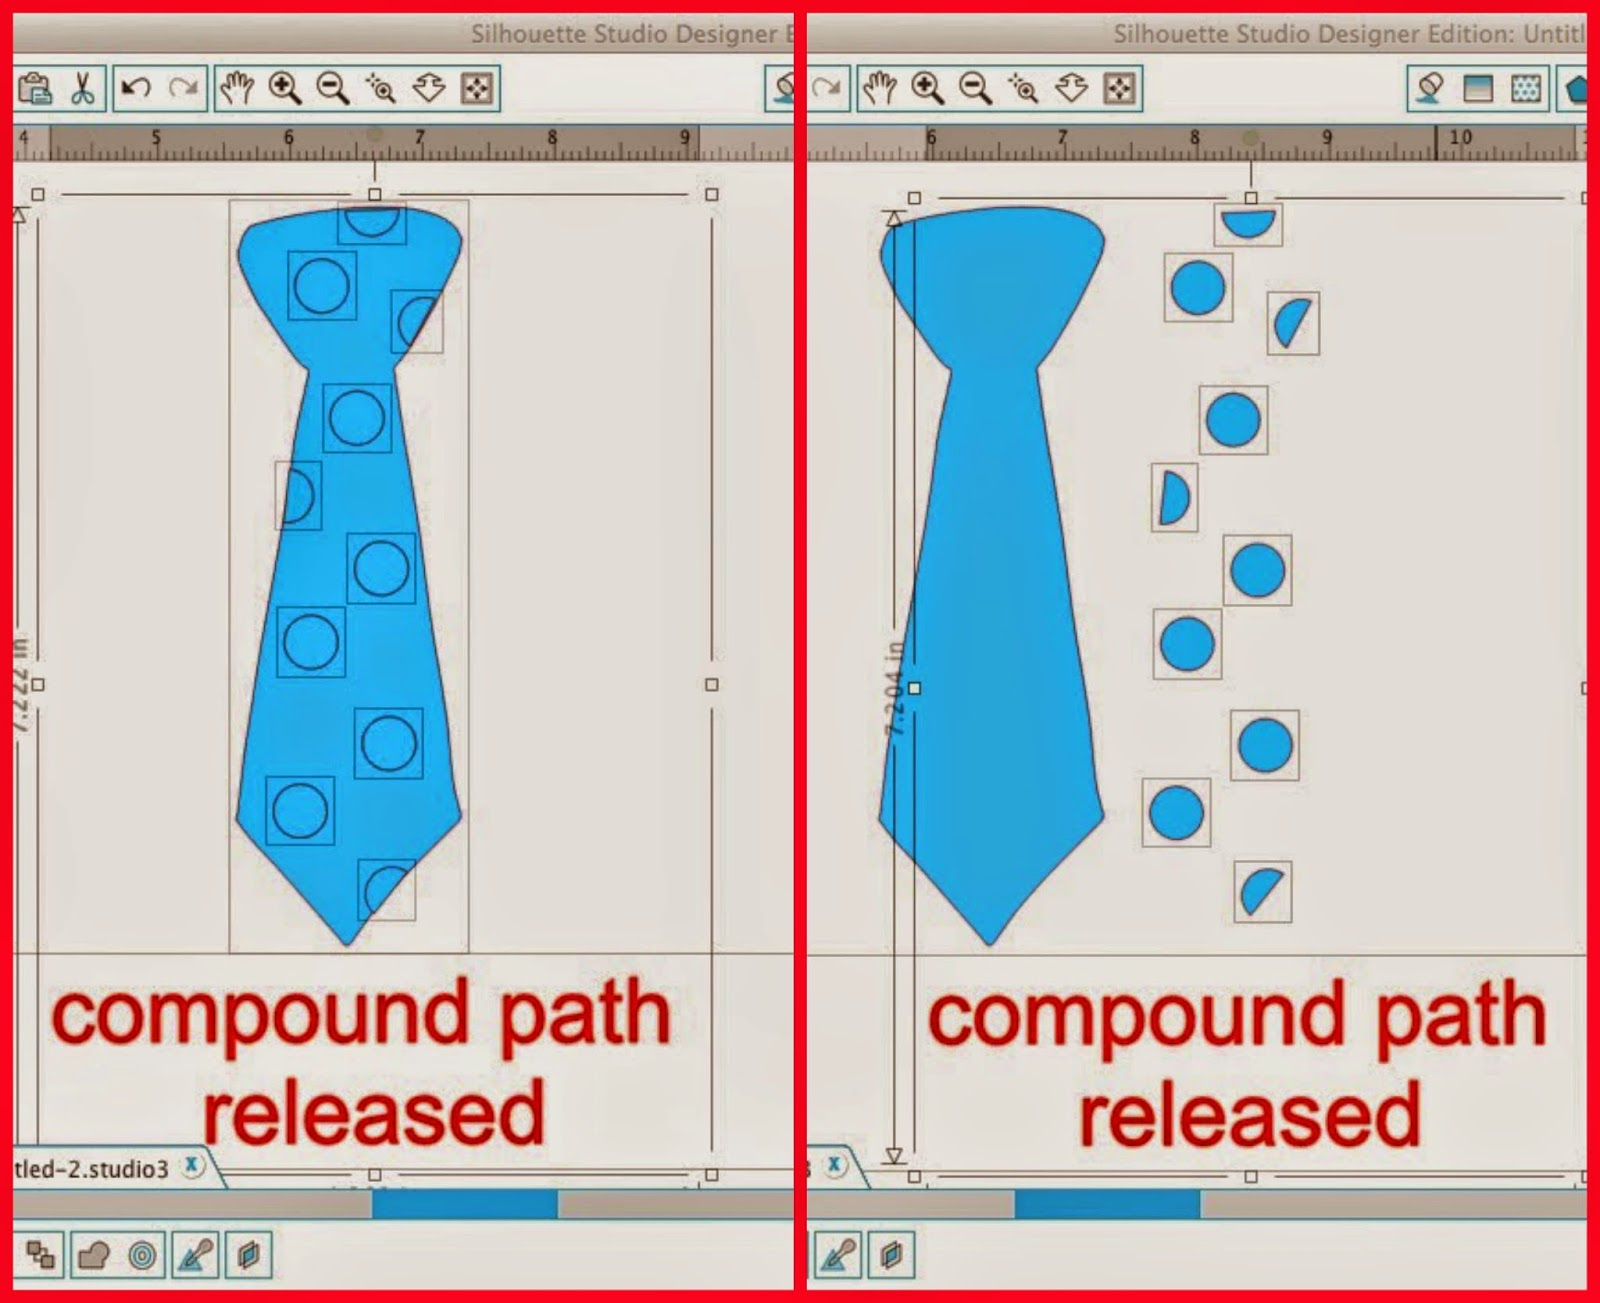 Silhouette Studio, release compound path, Silhouette tutorial